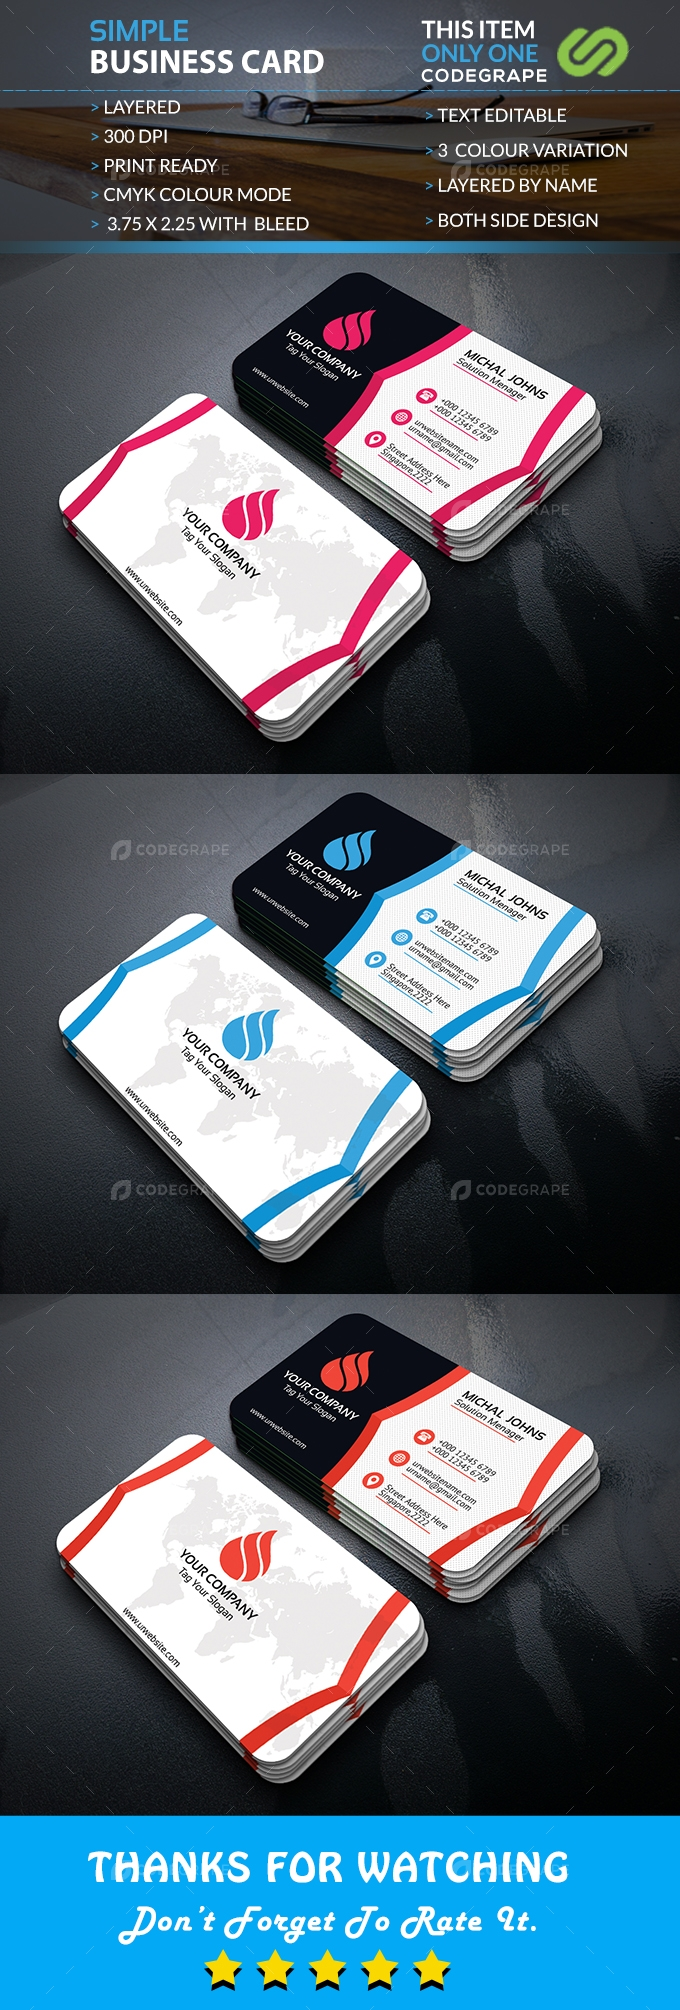 Simple Business Card Vol. 09